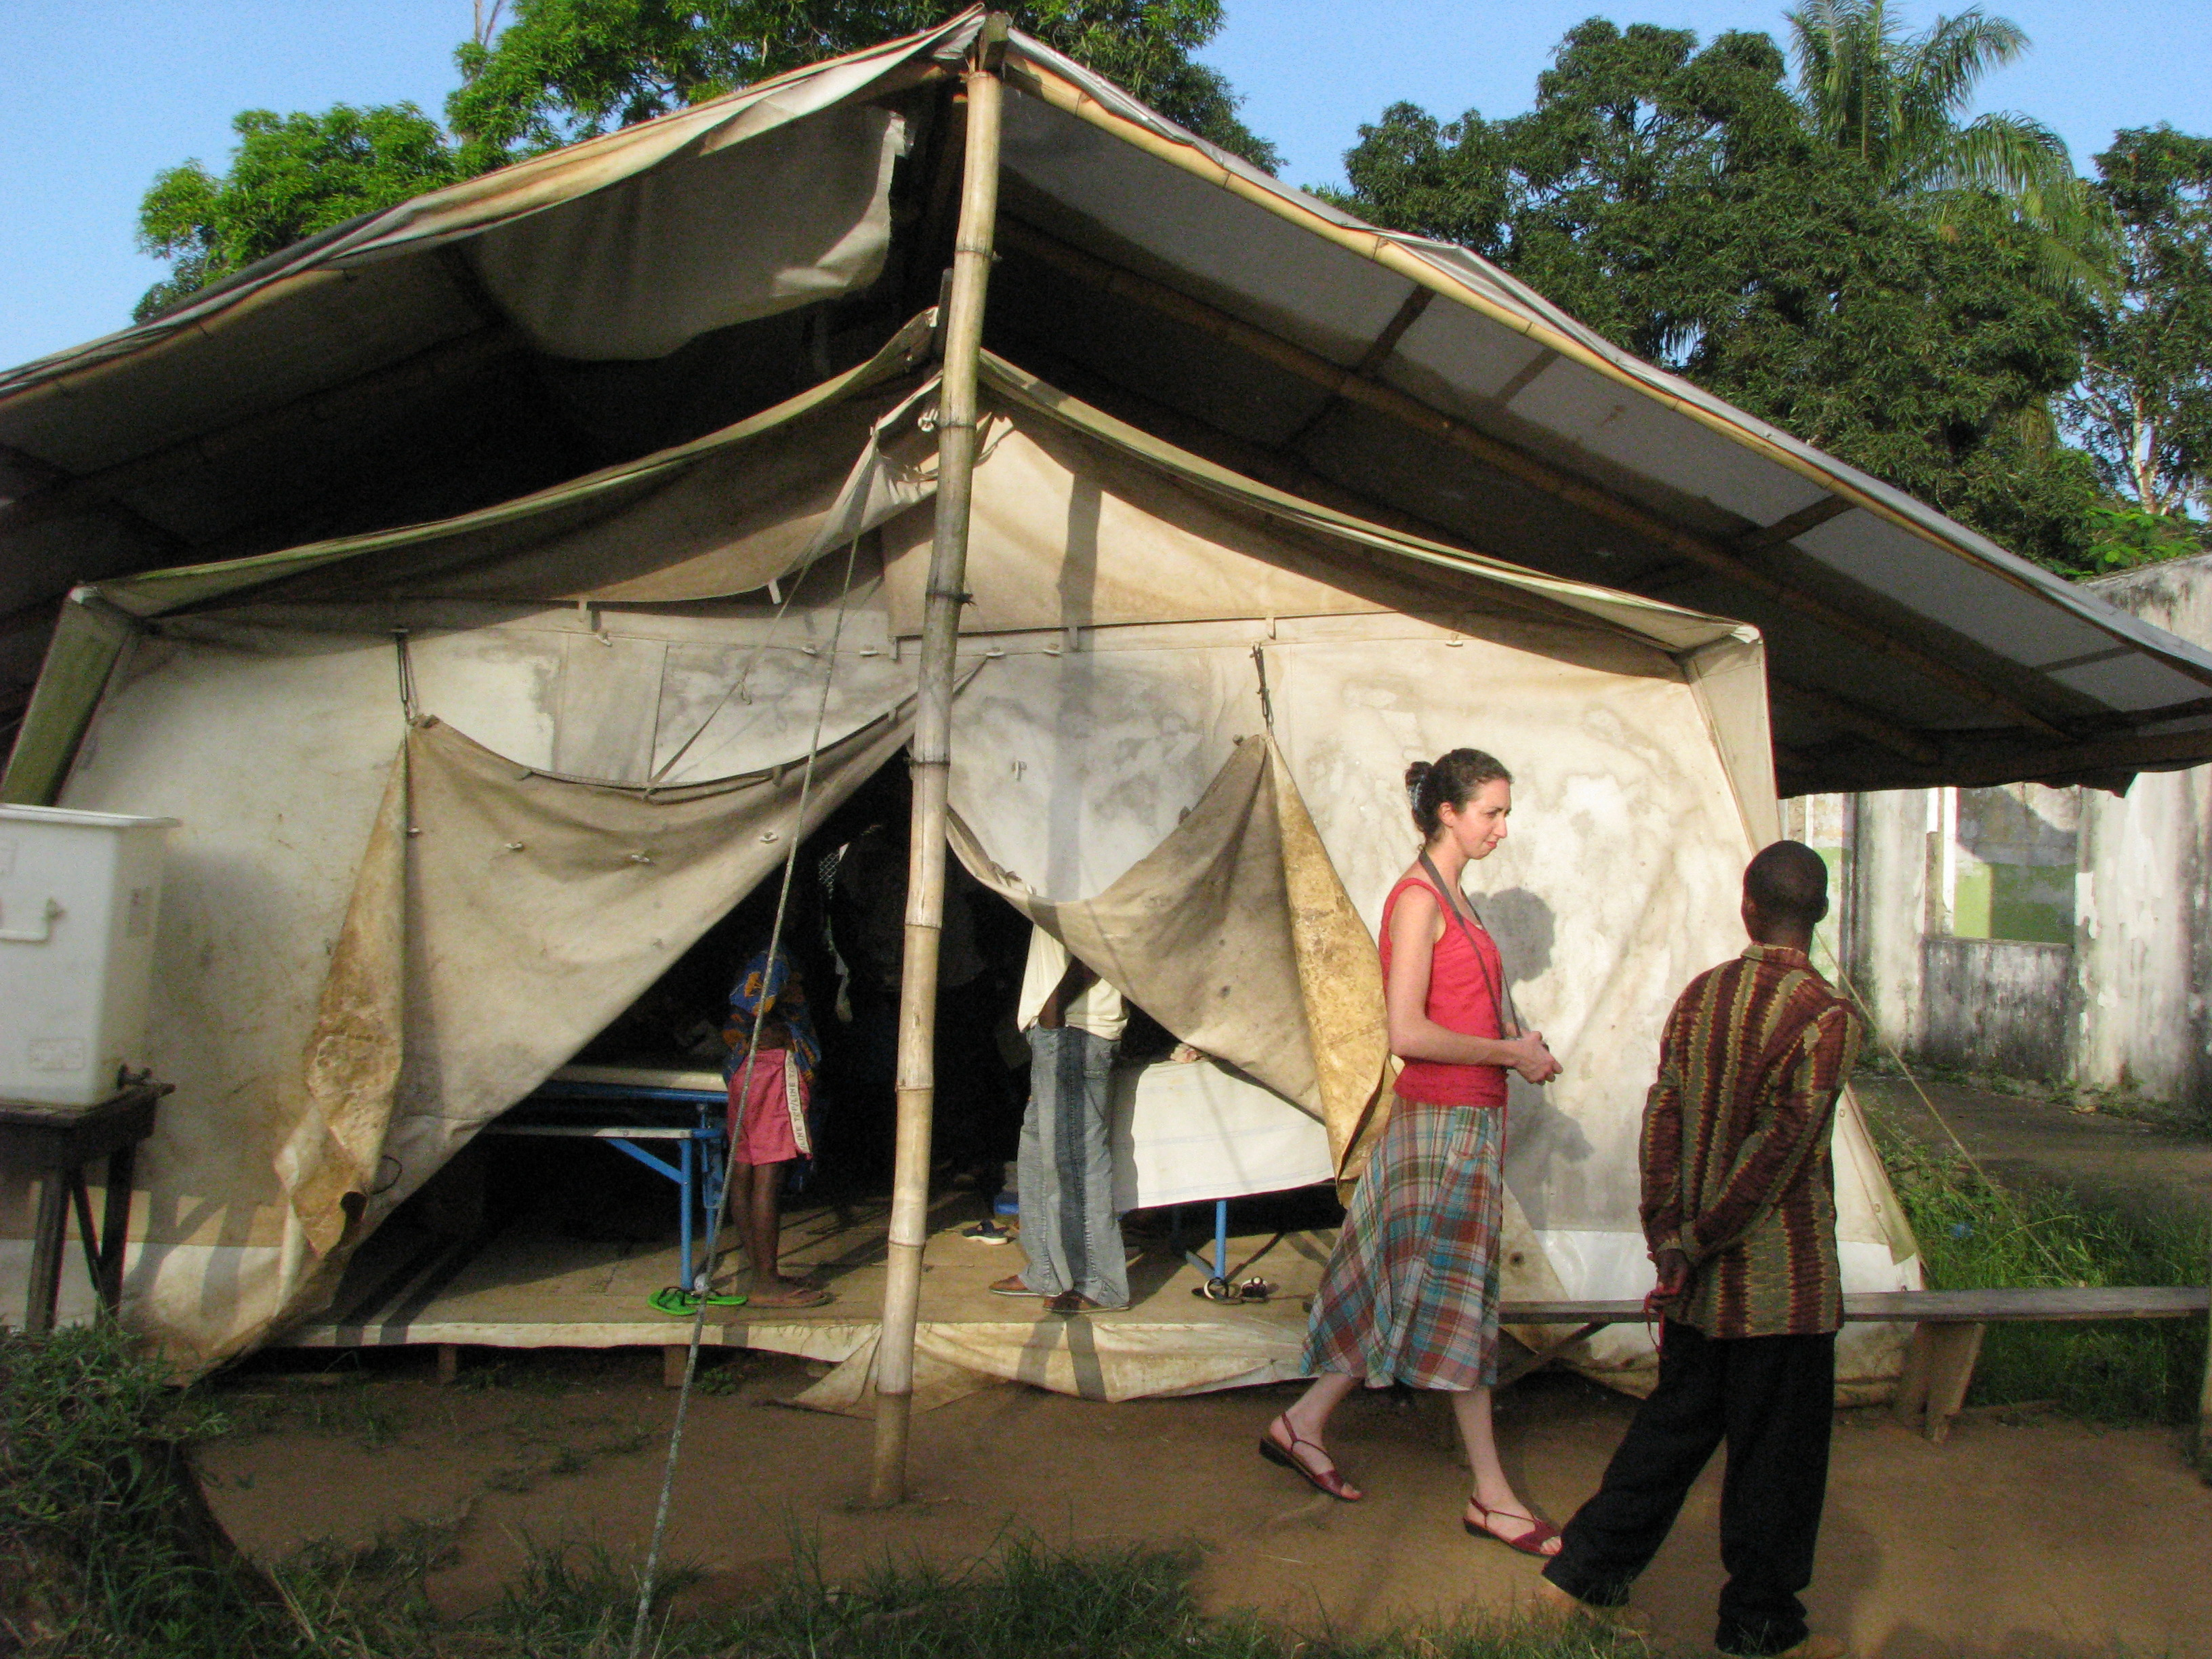 Ulster Missionary and trained nurse Joanne Greer visits a makeshift hospital in Foya, Liberia West Africa